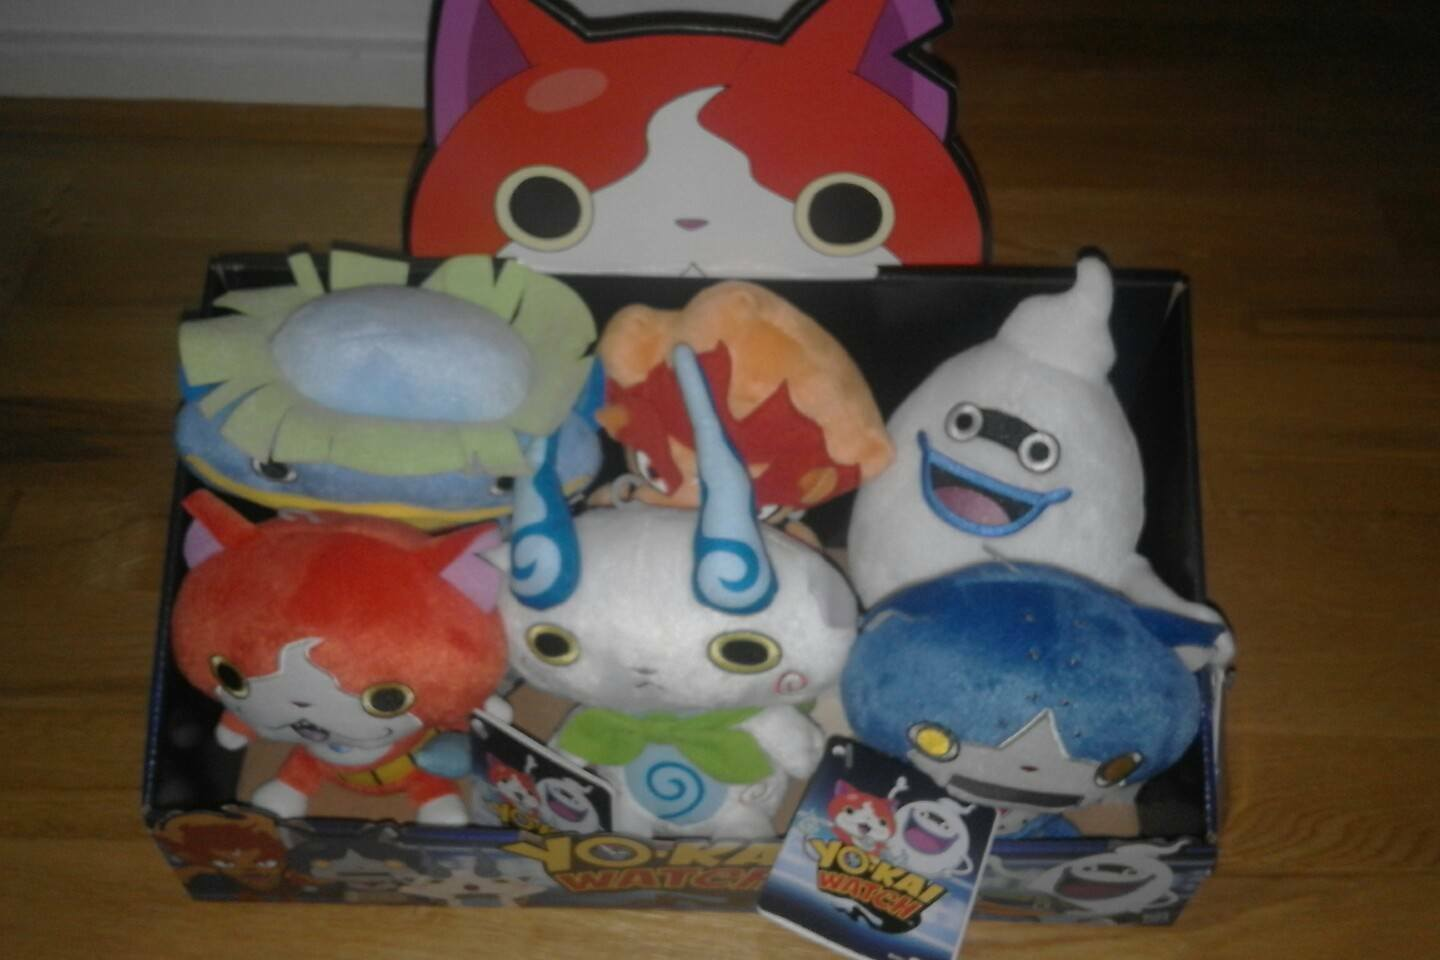 Neuf Rare Lot de 6 Yokai Watch Peluche Jouet Doux personnage figures + Rare Display Case